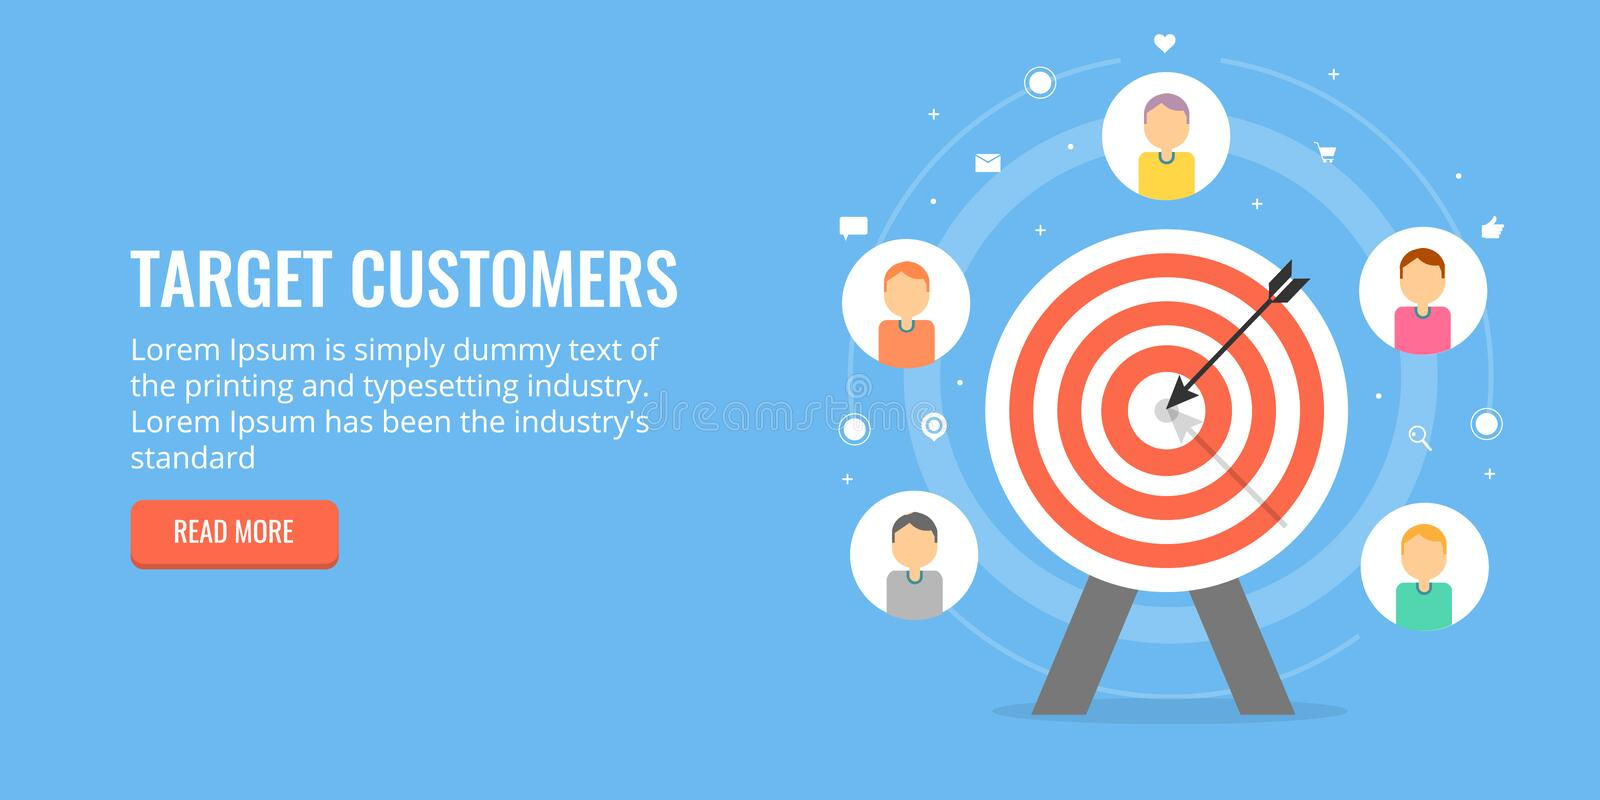 Target customers for online business, attracting new leads. Flat design marketing banner. Concept of targeting new customers, lead generation for online stock illustration